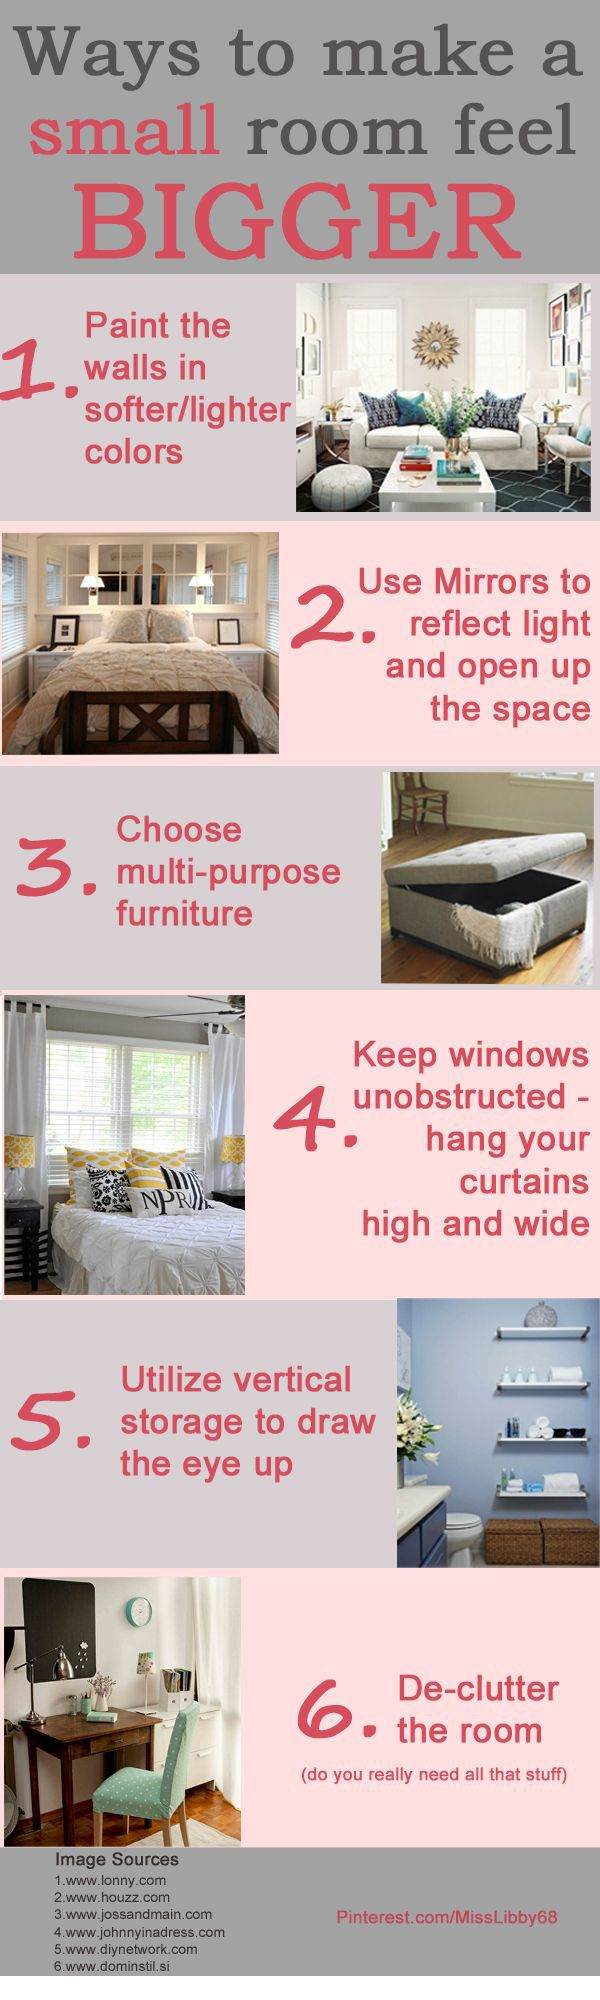 Bedroom color ideas for small rooms - 20 Bedroom Organization Tips To Make The Most Of A Small Space